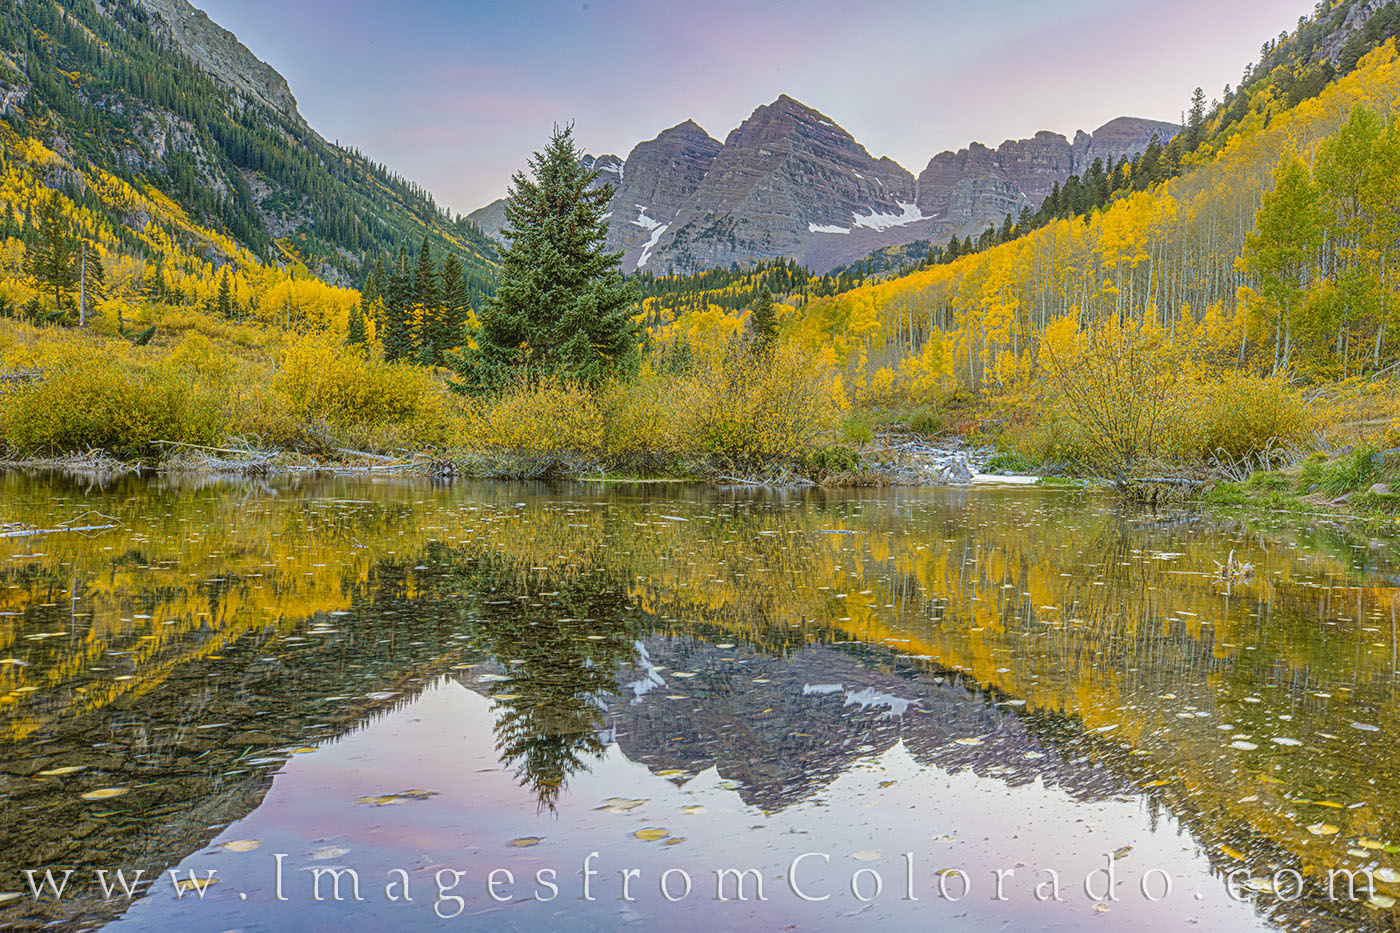 maroon bells, fall, autumn, october, aspen, gold, yellow, cold, 14ers, west maroon creek, reflection, photo